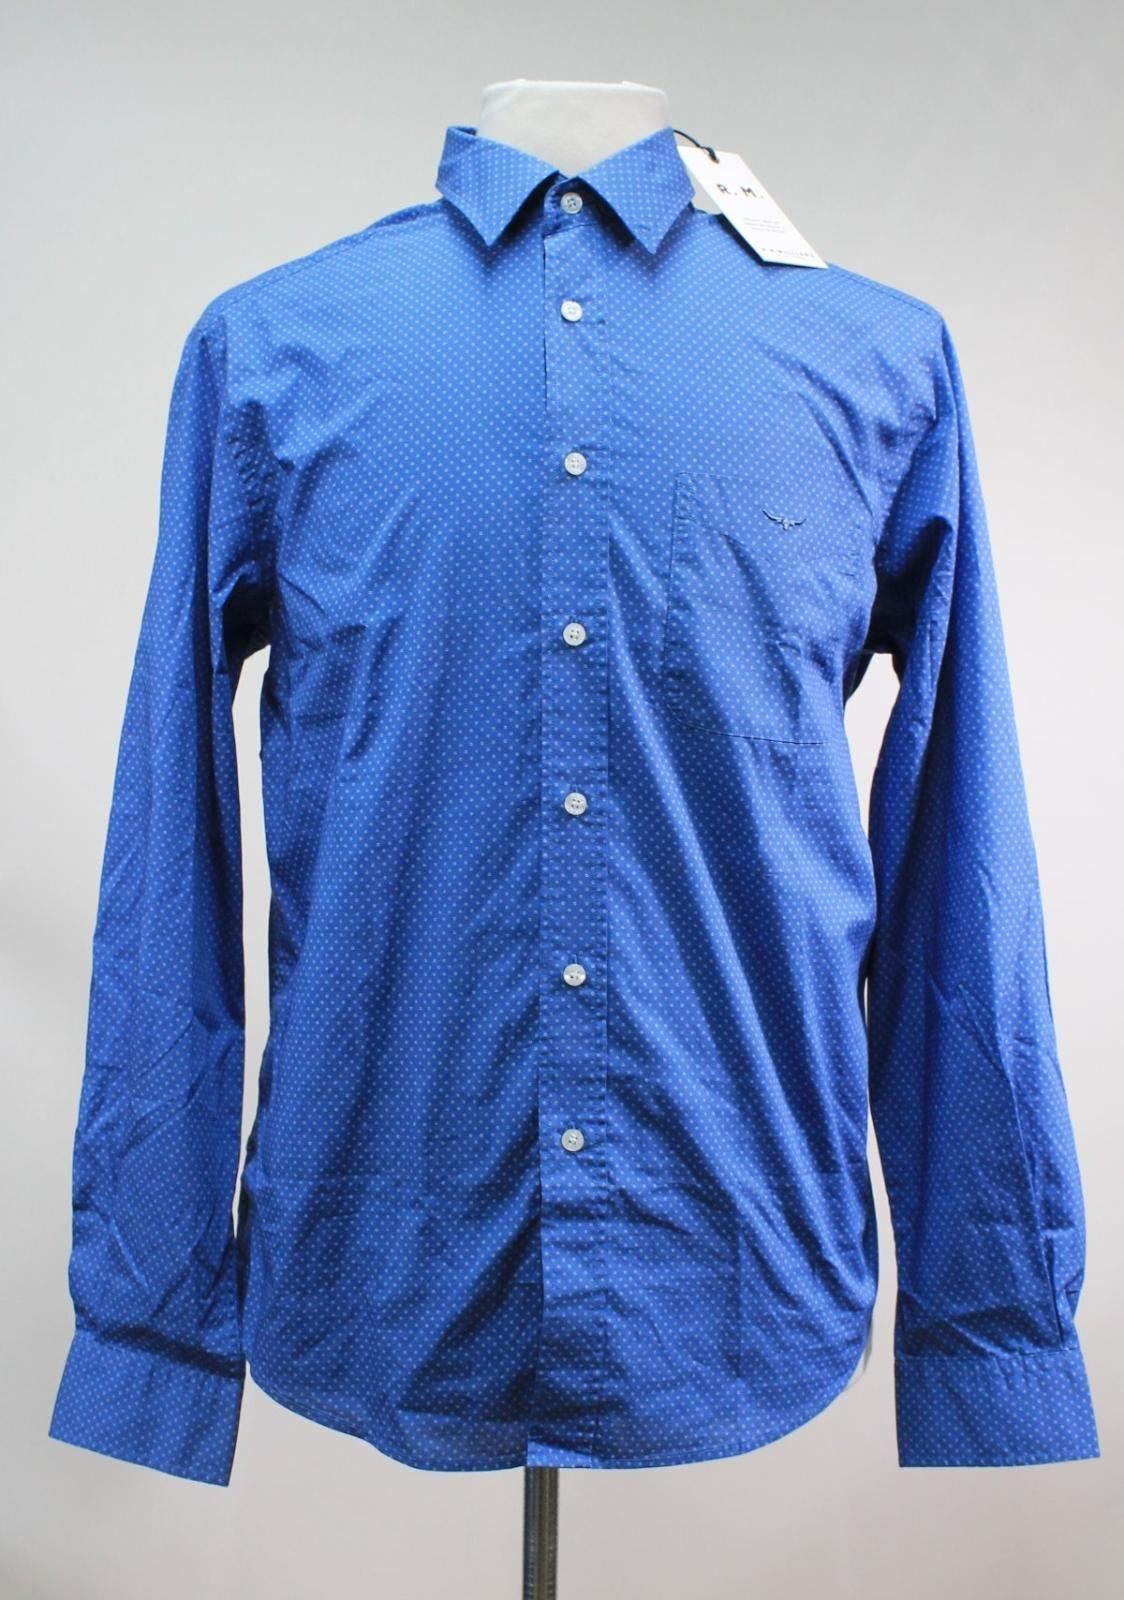 BNWT R. M. WILLIAMS Men's bluee Spotted Cotton Collared Collins Shirt Size XXL